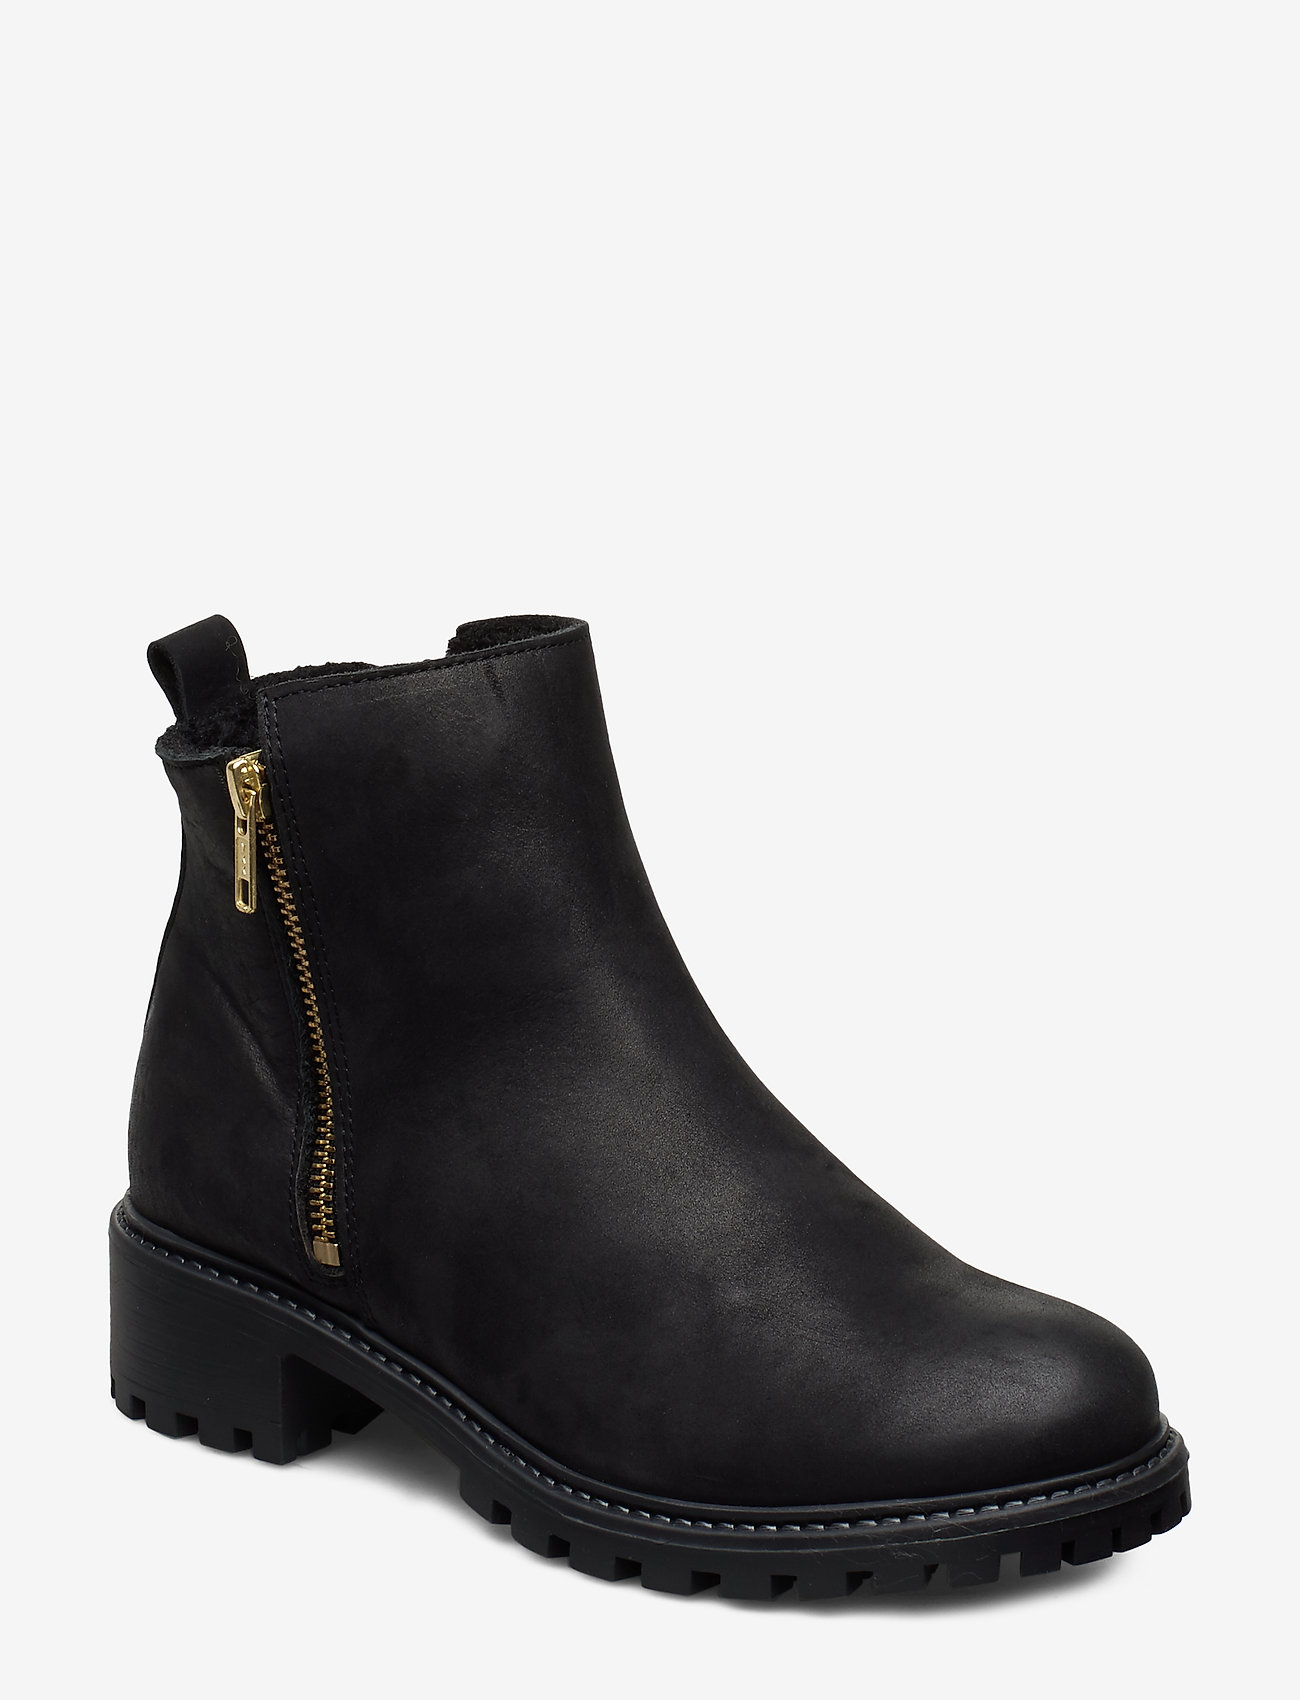 Sofie Schnoor - Boot - flat ankle boots - black - 0